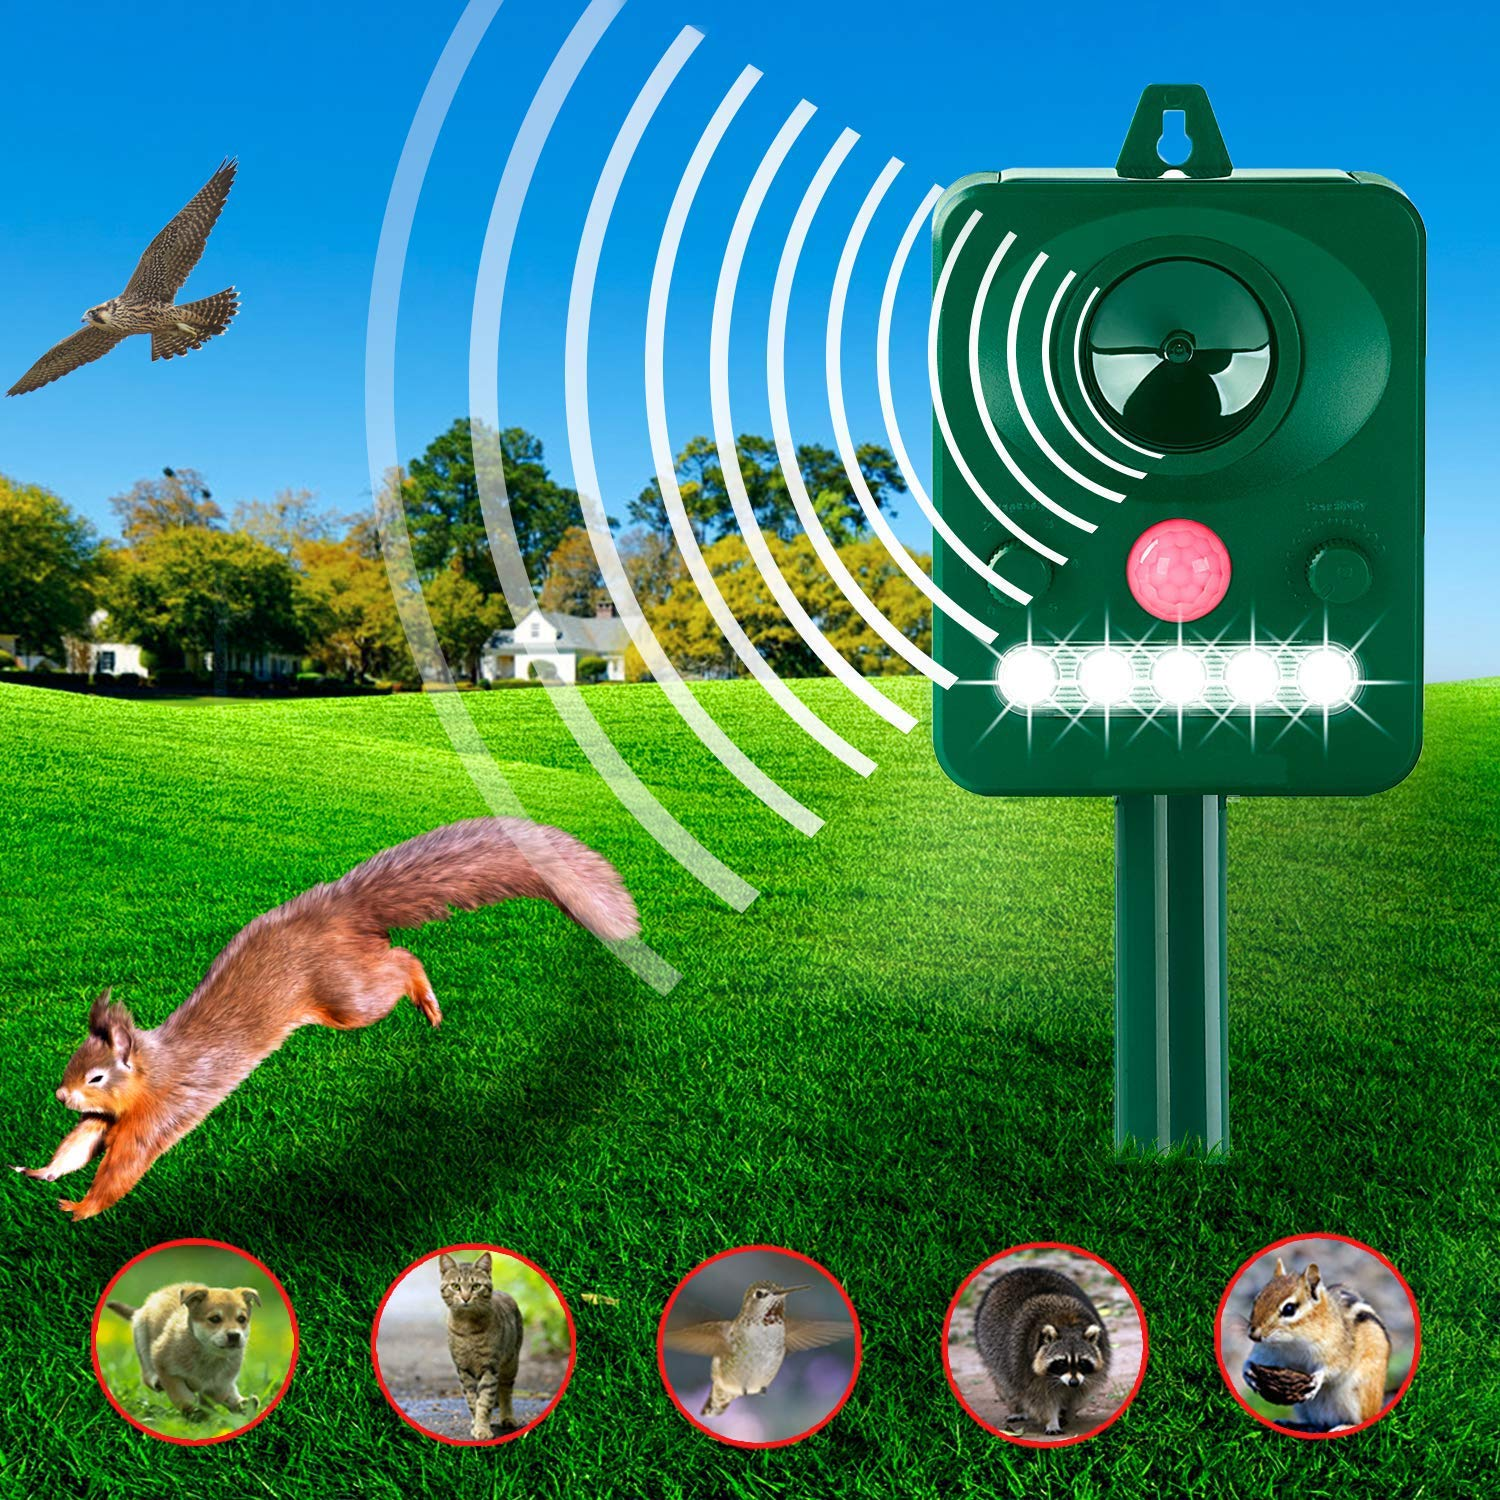 ZYYRSS Solar Animal Repeller, Solar Powered Repellent with Motion Sensor Ultrasonic and Red Flashing Lights Outdoor Waterproof Repellent for Skunks, Dogs, Foxes, Birds, Raccoons product image